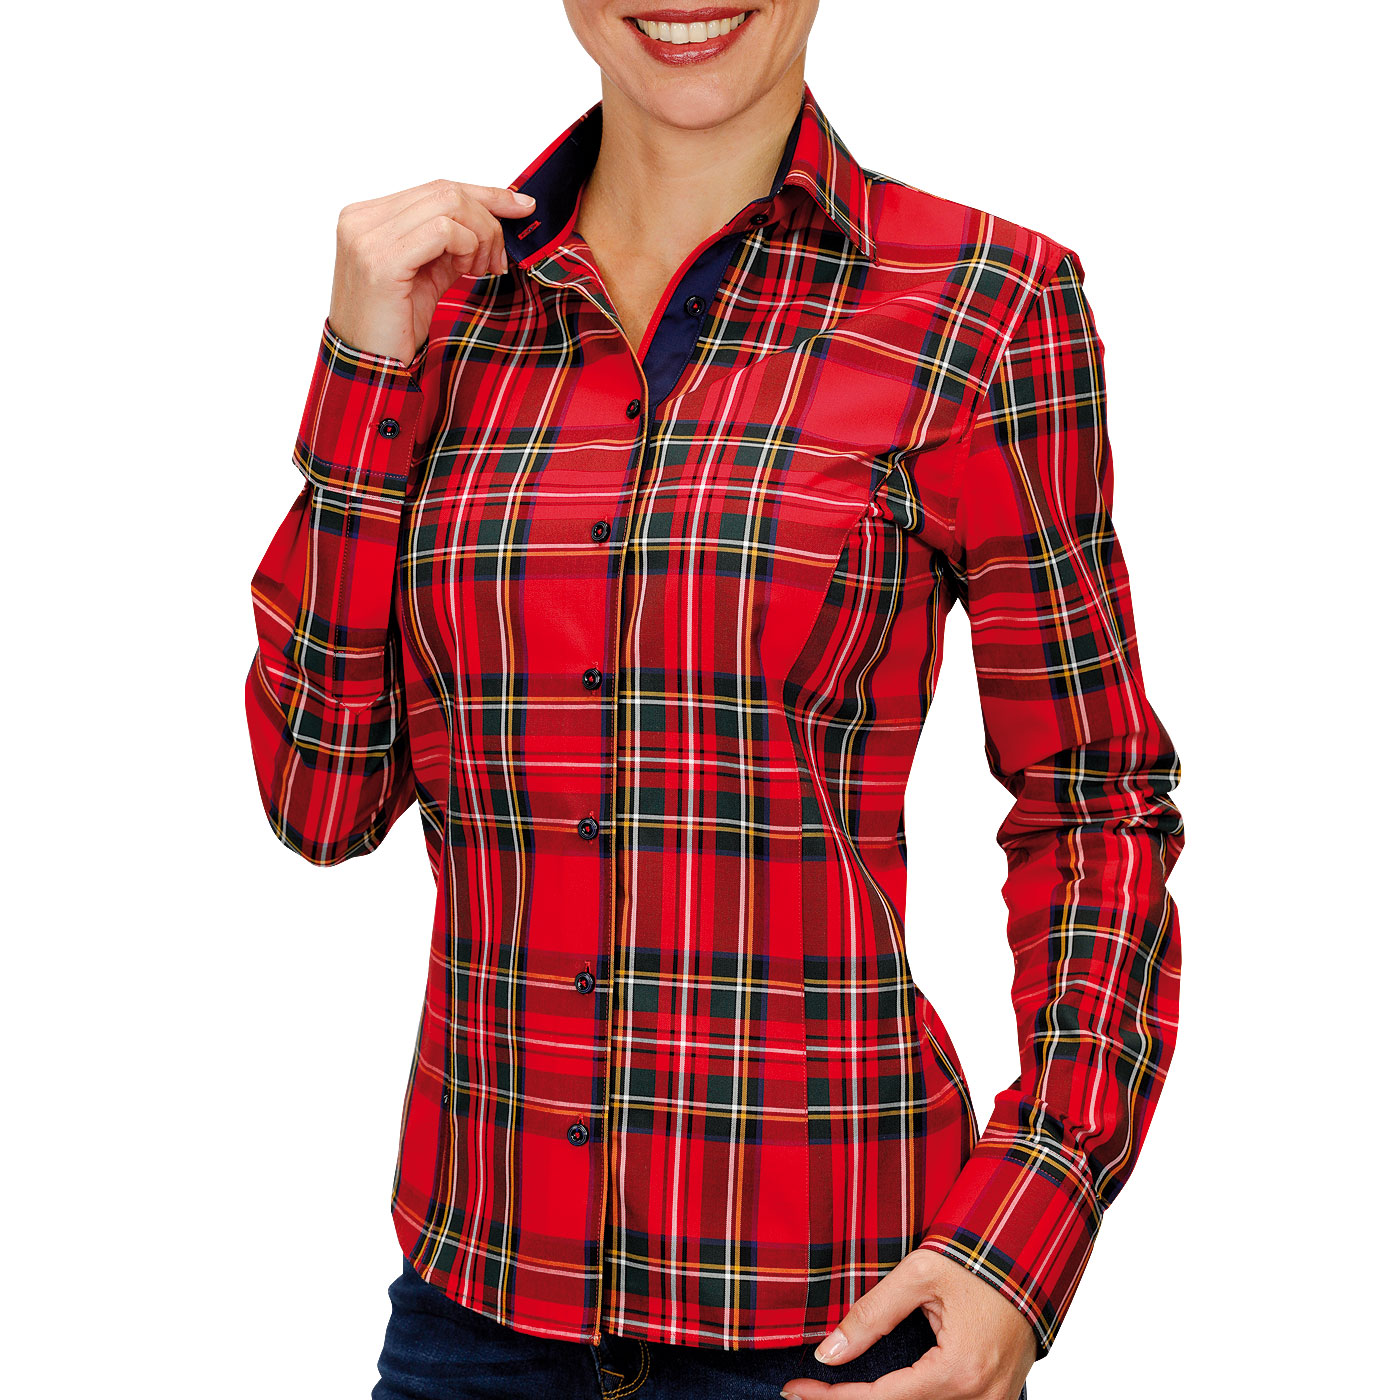 Original Women's Shirt by Webmenshirts.com Fashion Designer